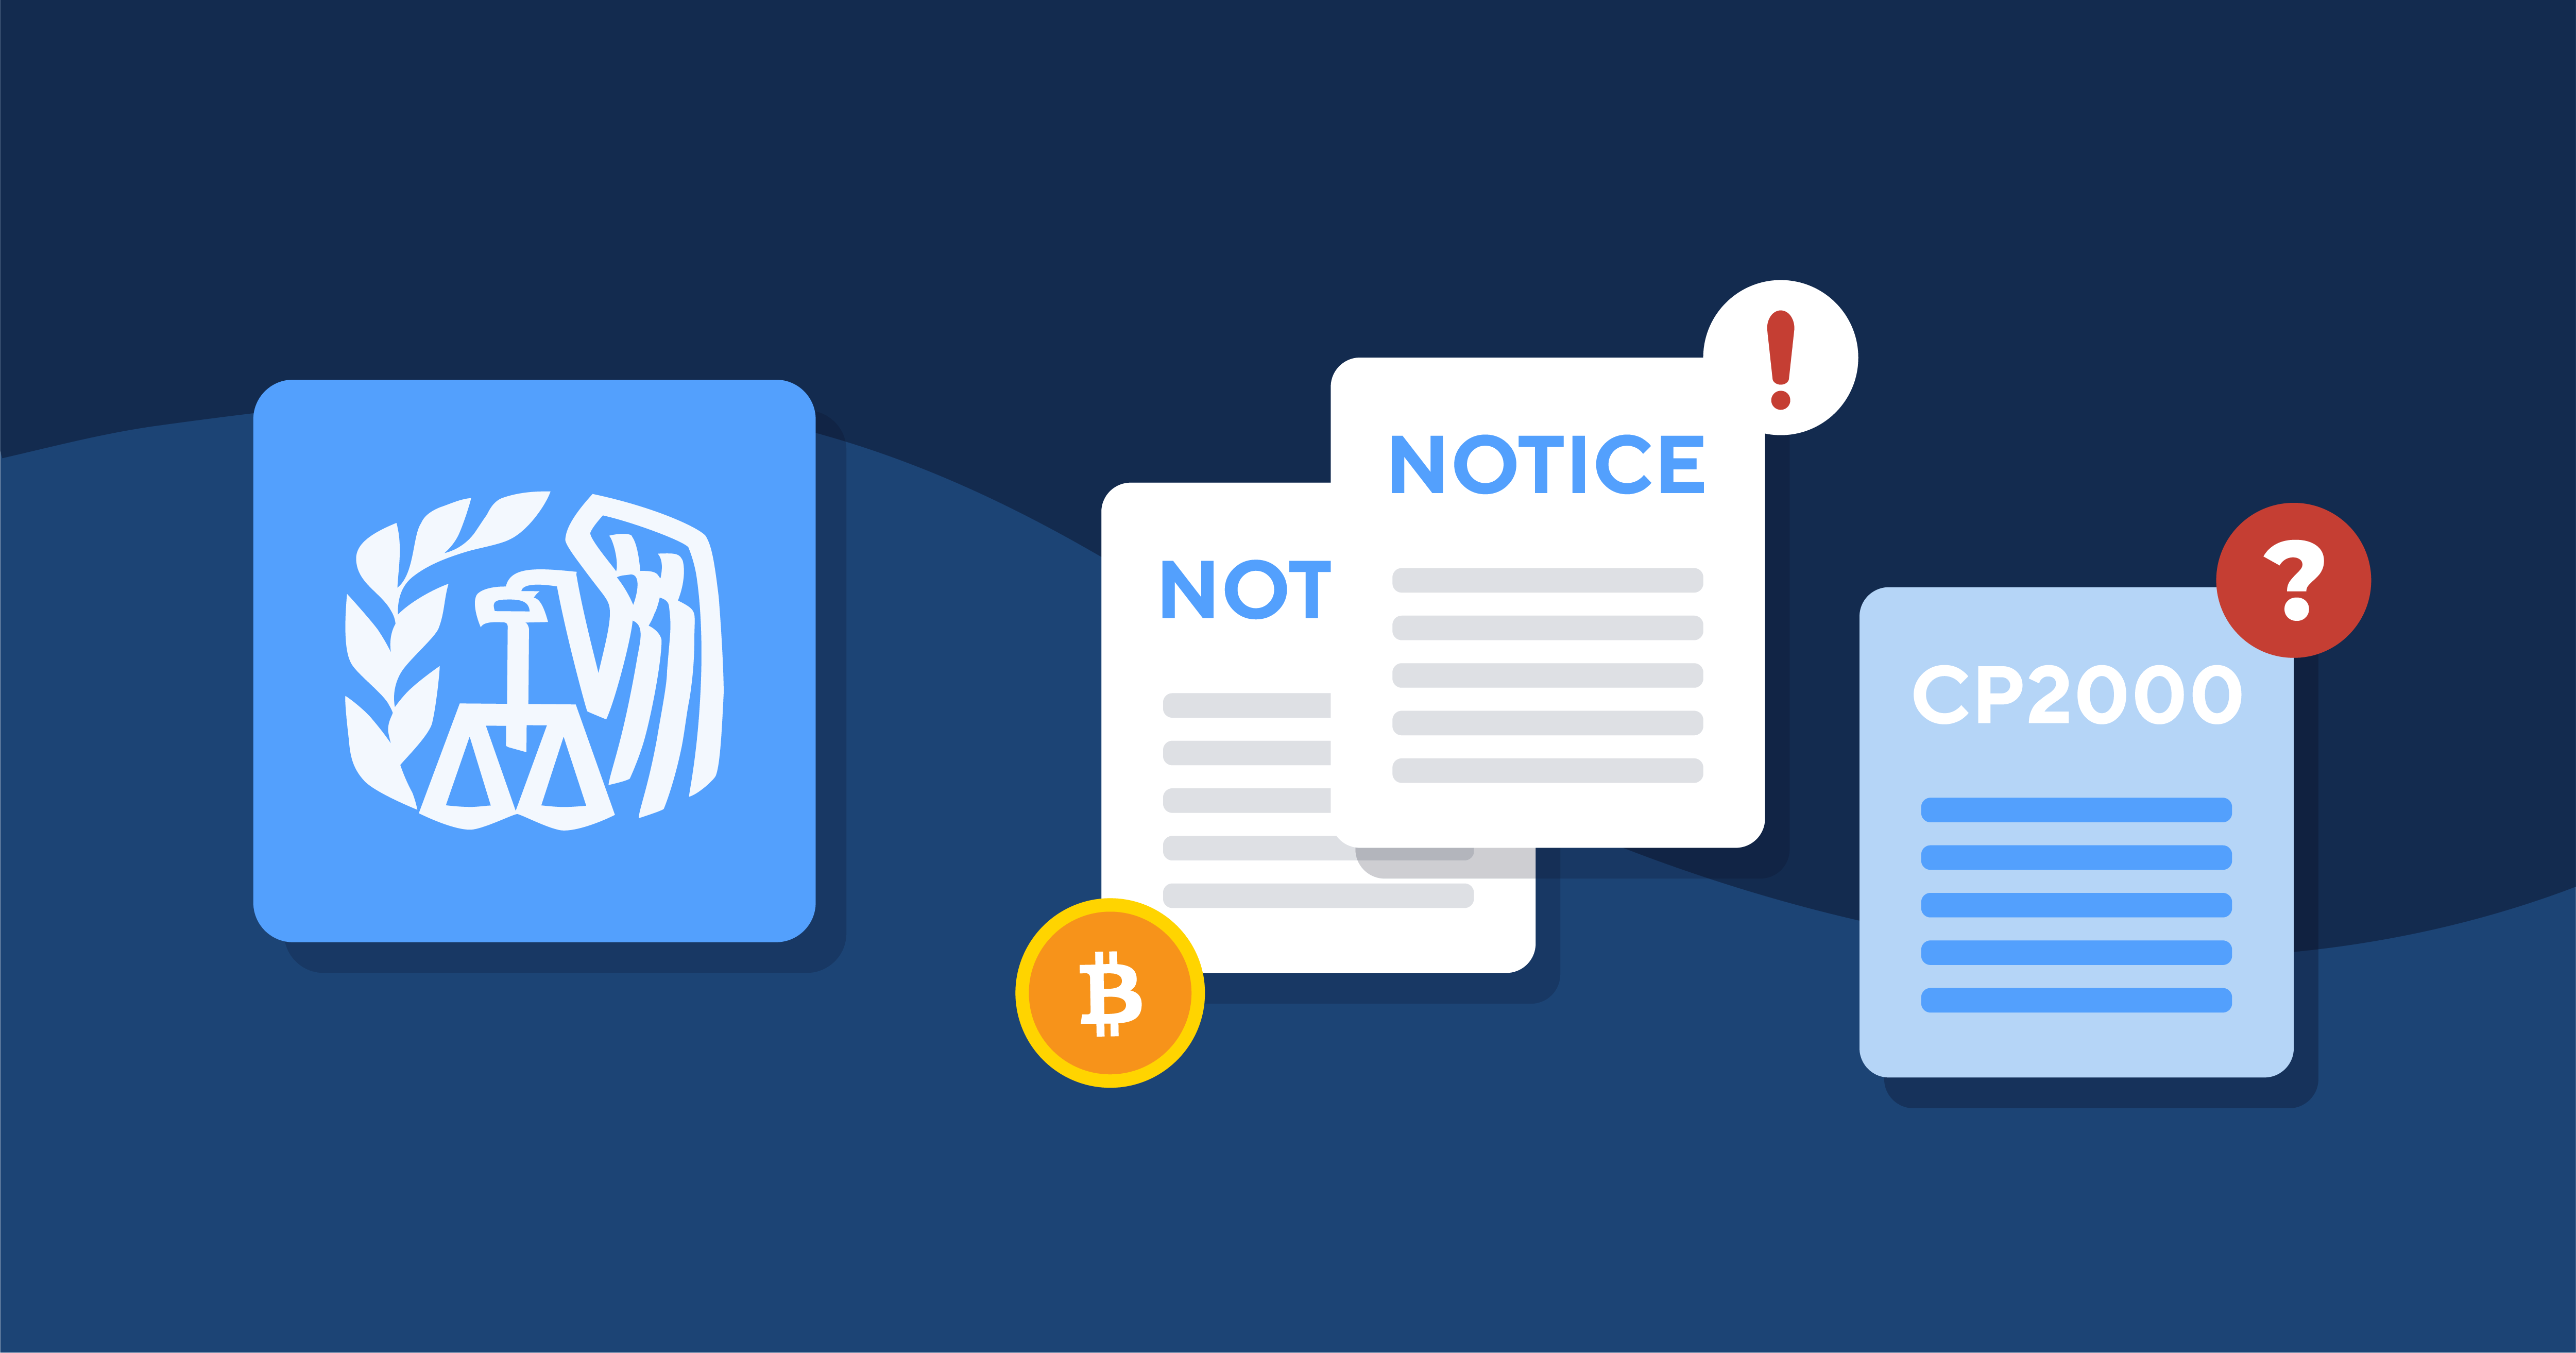 IRS Notice CP2000 for Cryptocurrency - What Do I Do?